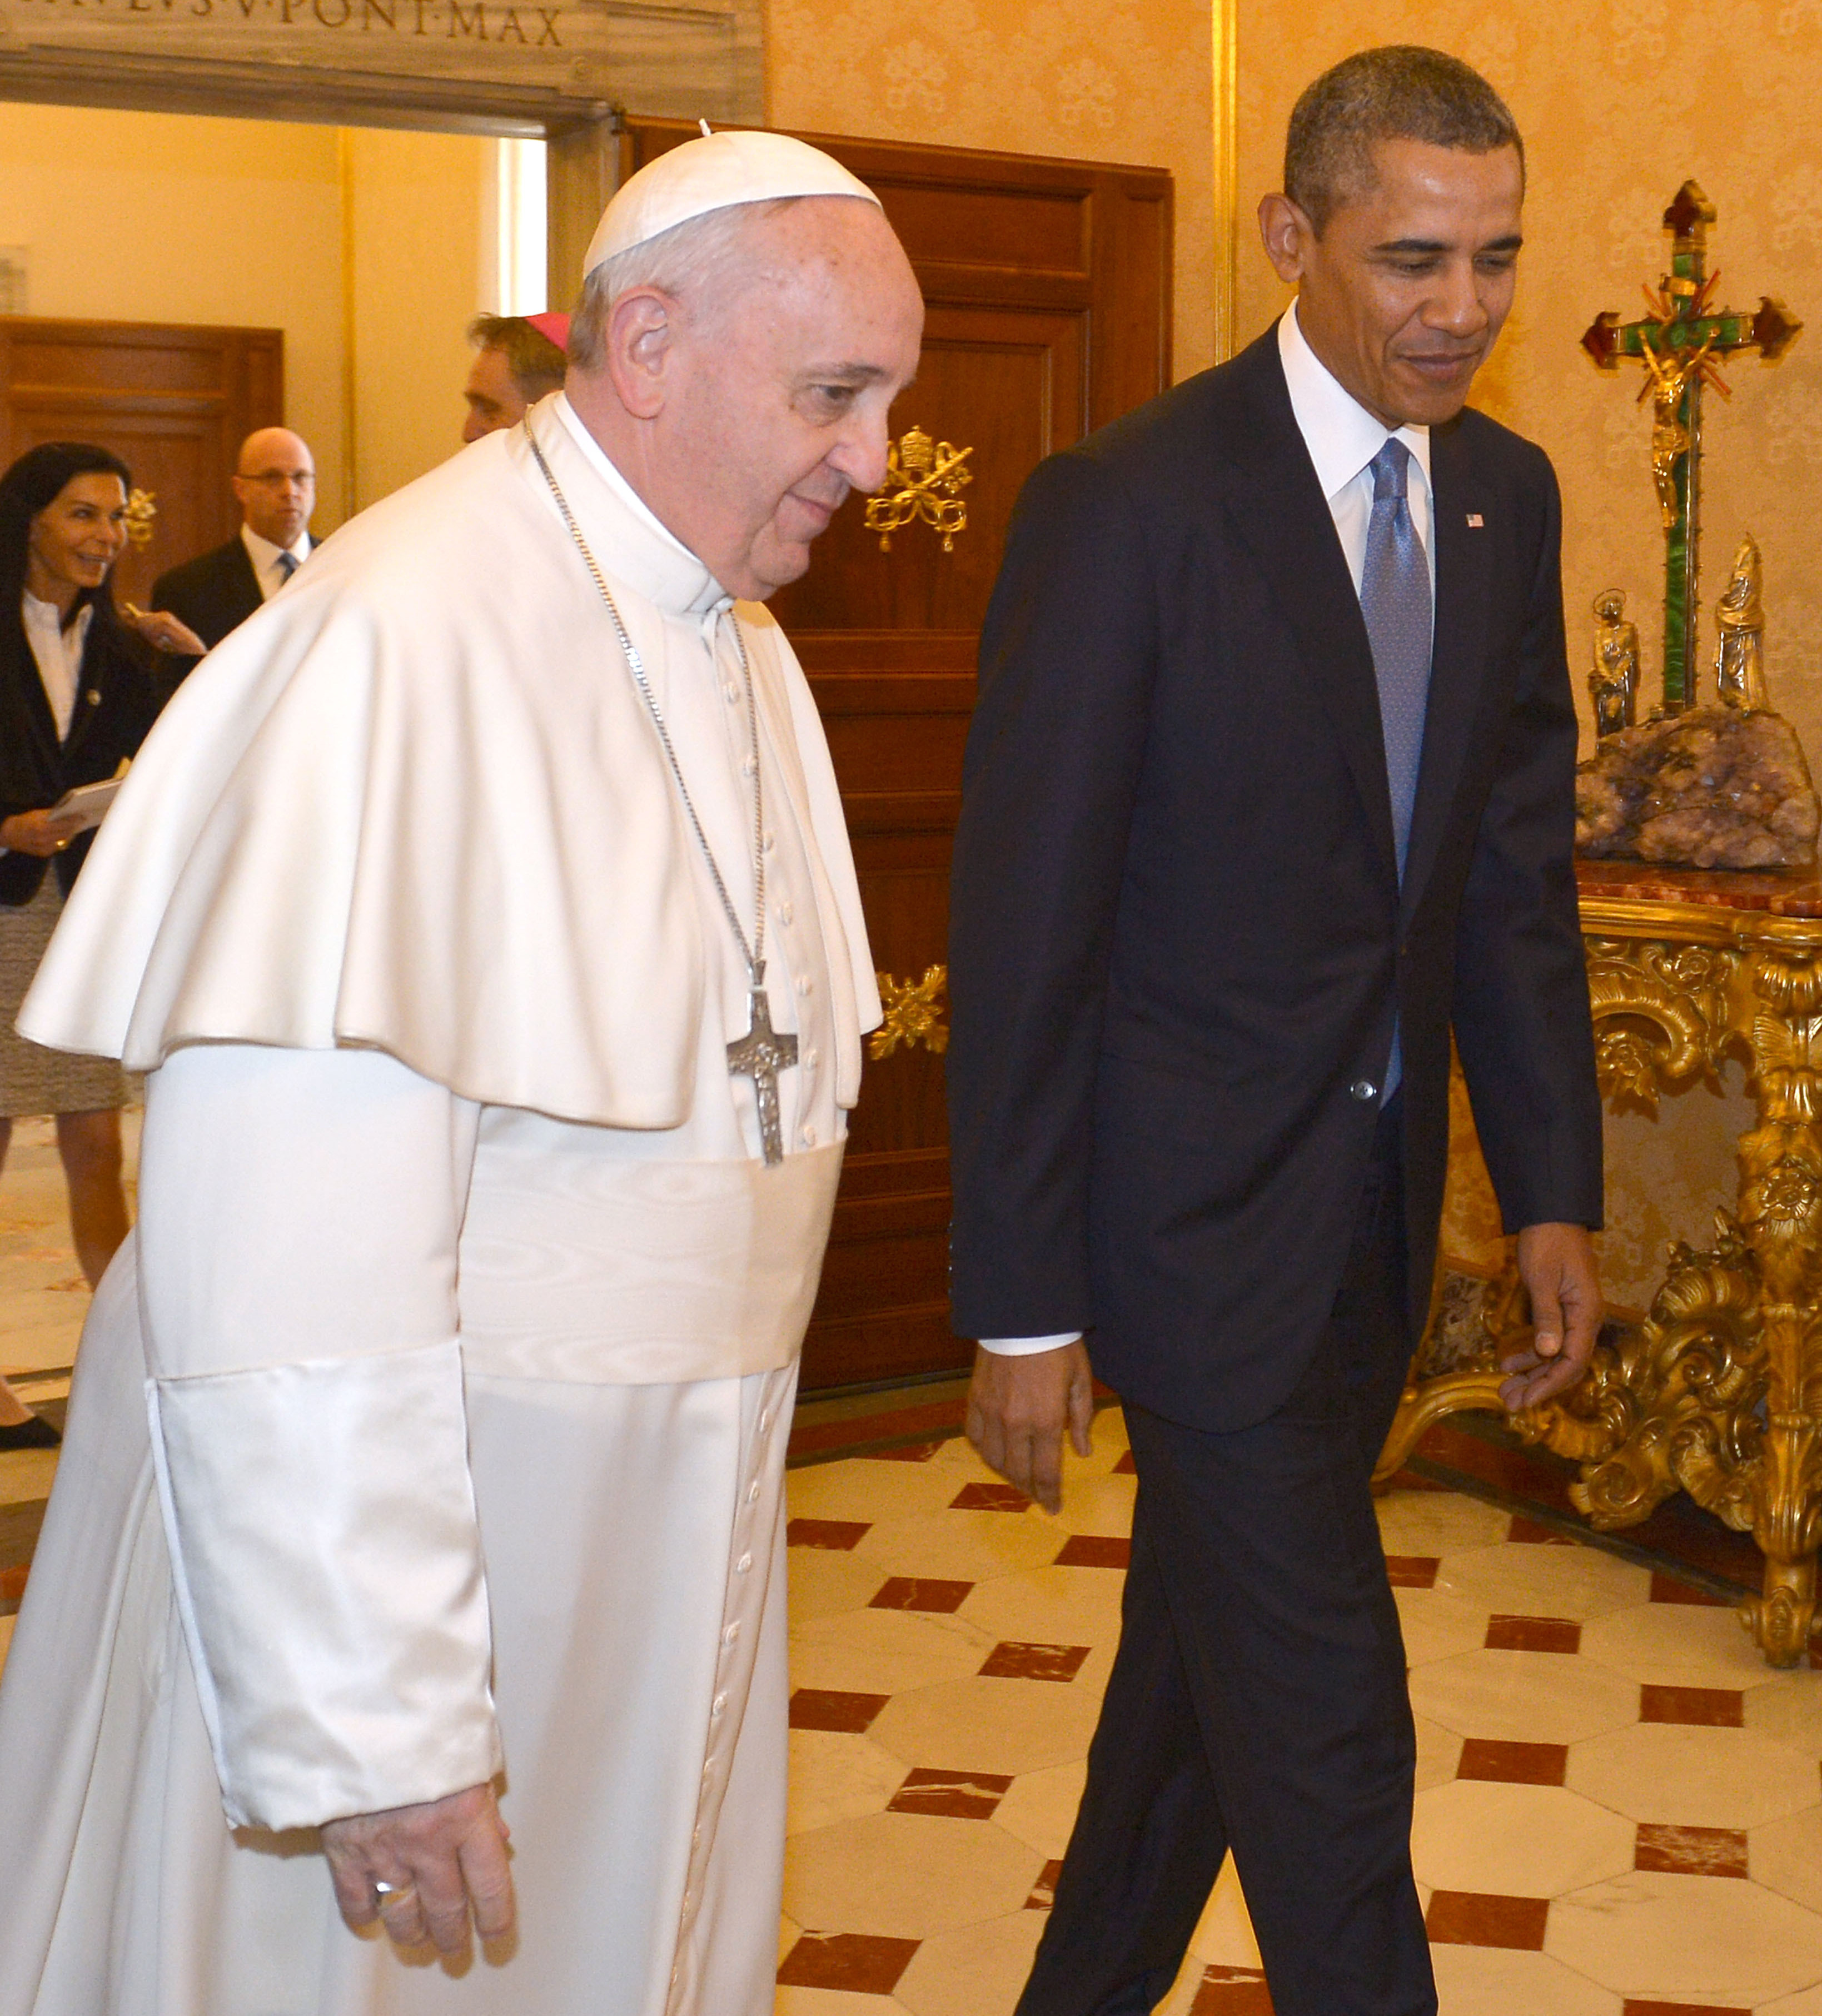 'I'm A Great Admirer,' Obama Tells Pope Francis